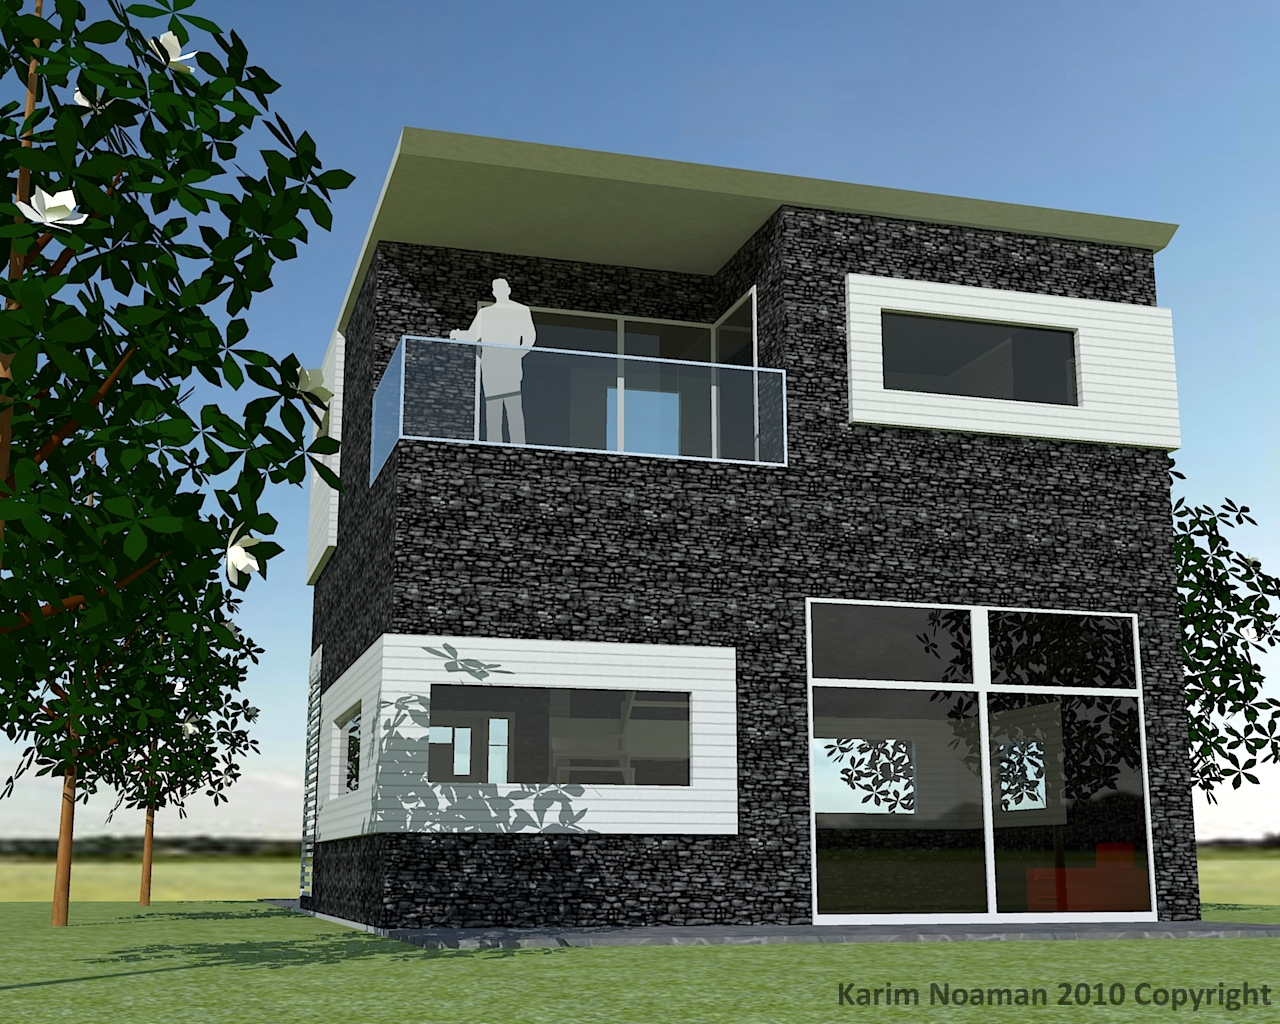 Simple modern house design by knoaman on deviantart for Simple but modern house design